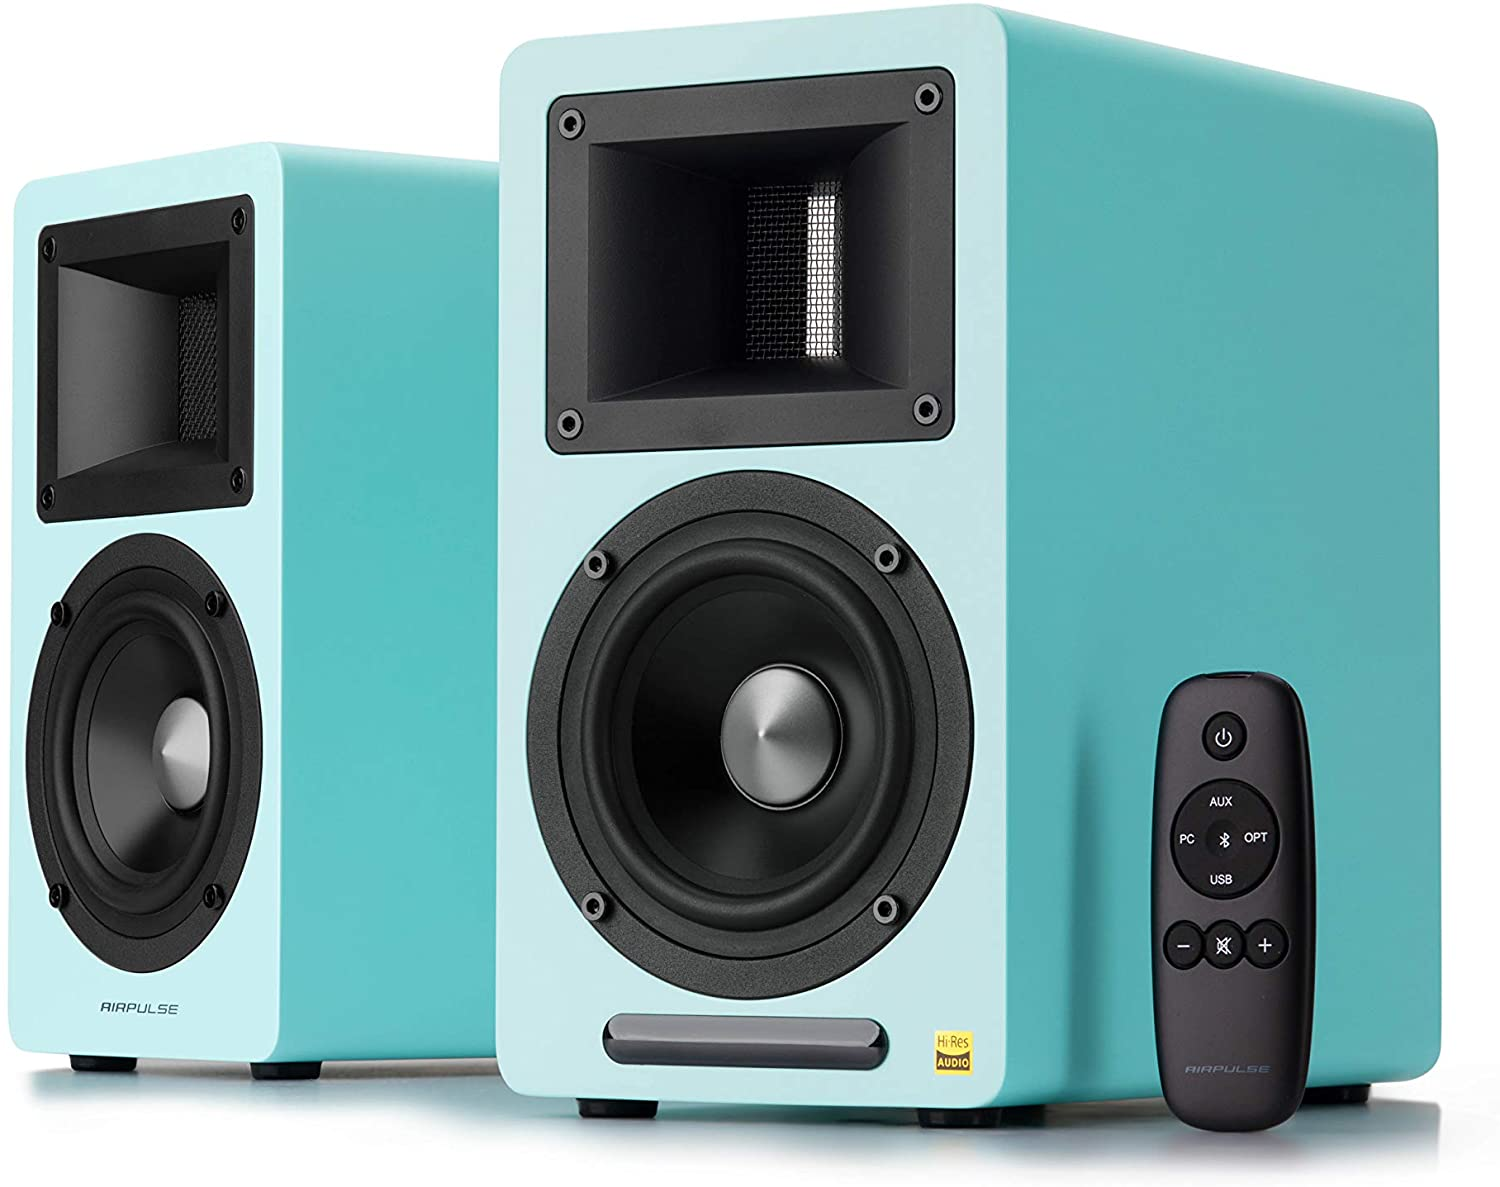 INTRODUCING THE NEW ELECTRIC BLUE AIRPULSE A80 ACTIVE SPEAKERS